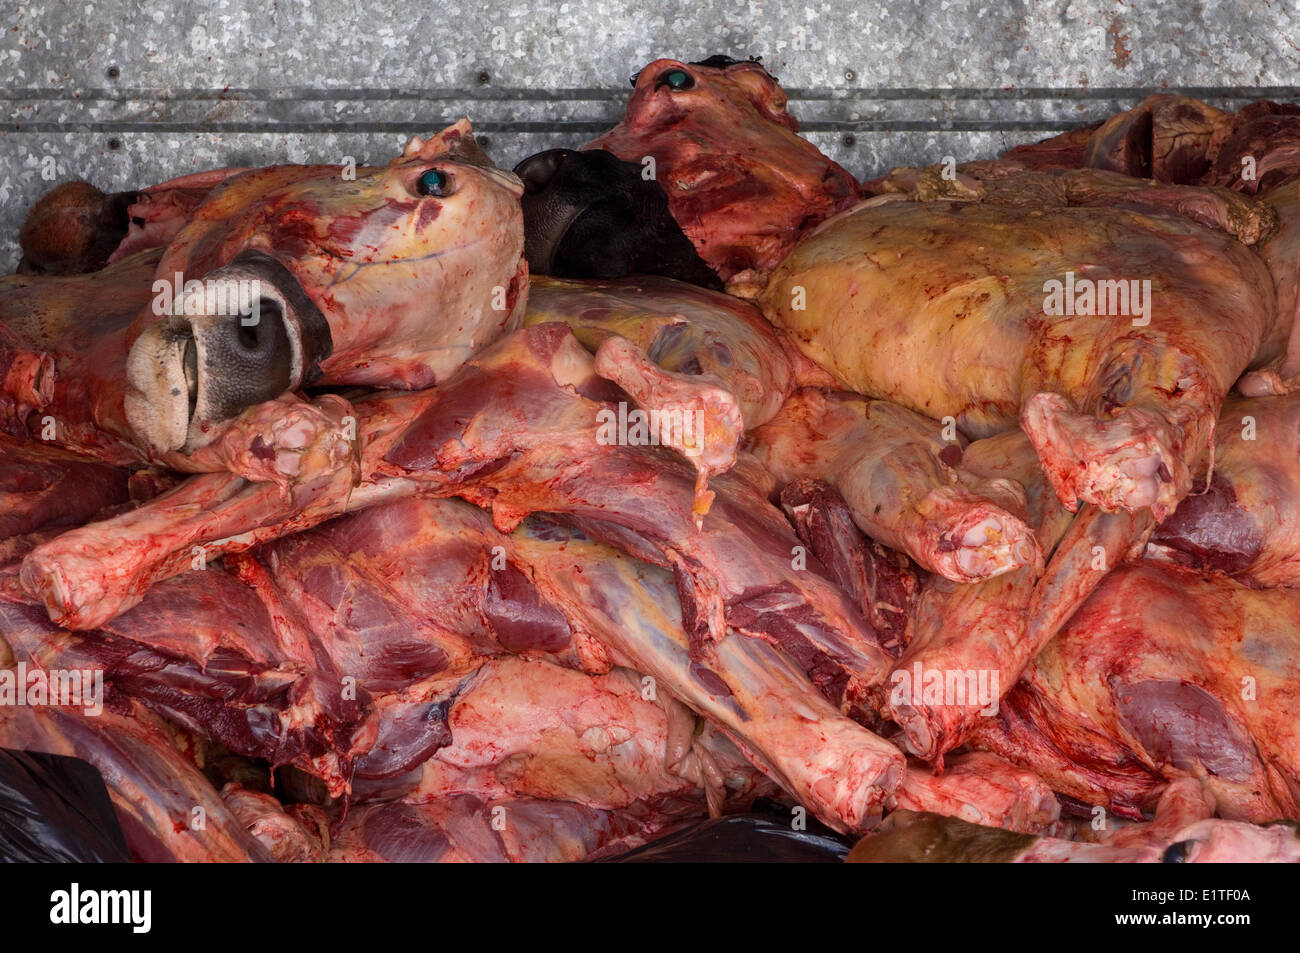 Meat in deliver truck,  in Zihuatanejo, Mexico - Stock Image